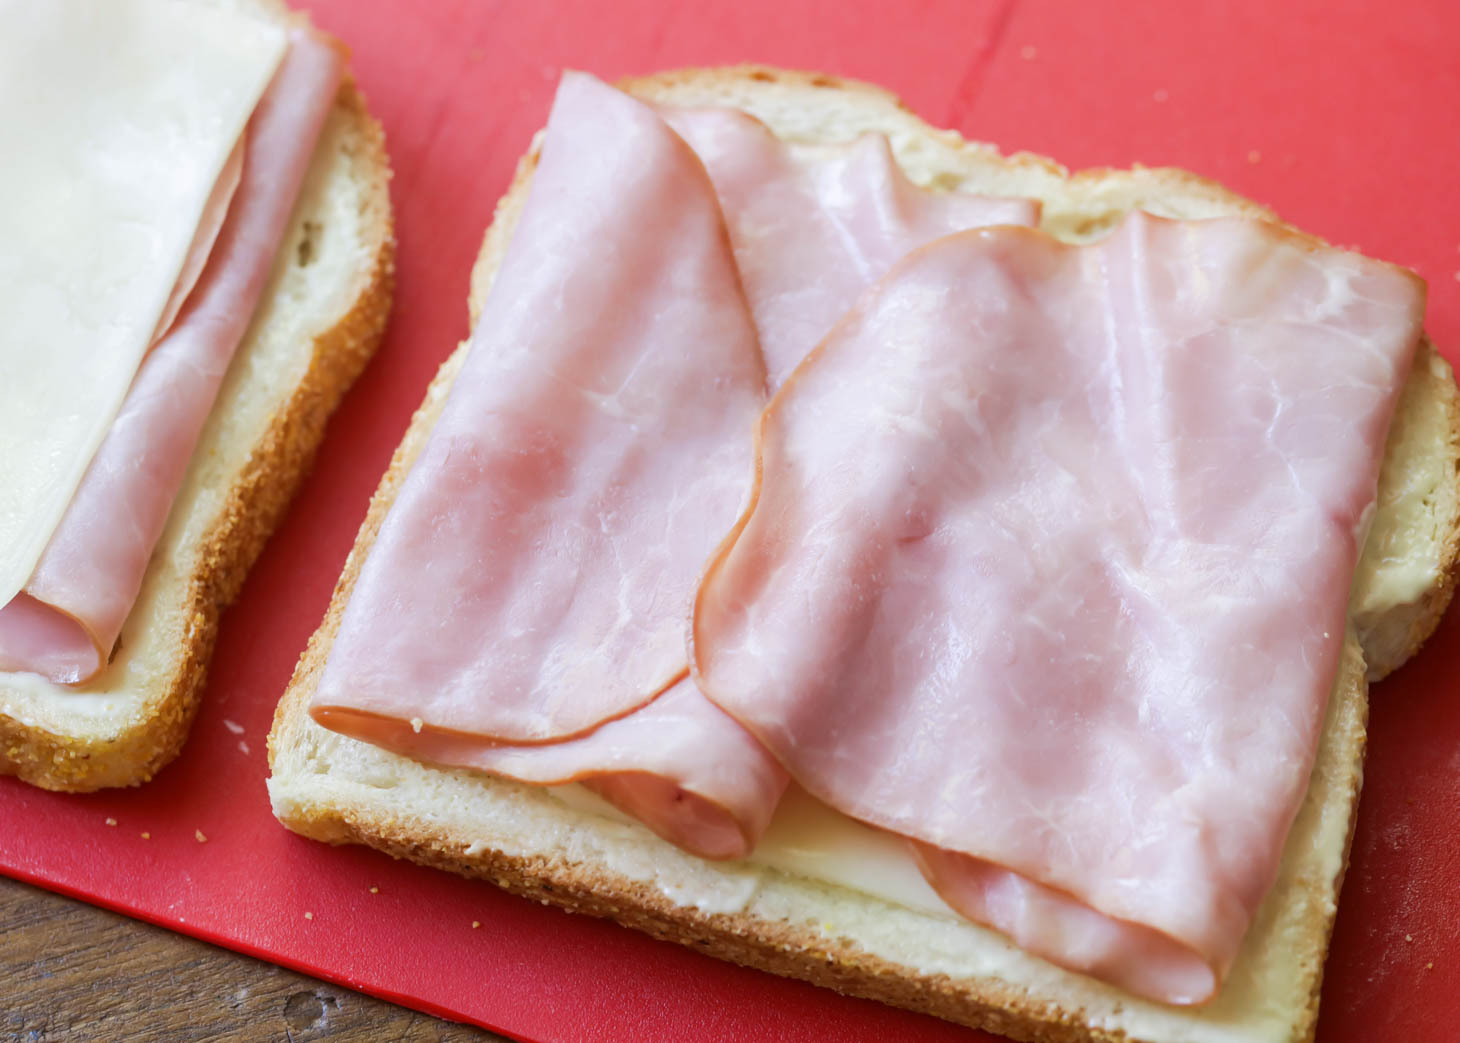 Layering ham and cheese on slices of bread to make Croque Monsieur recipe